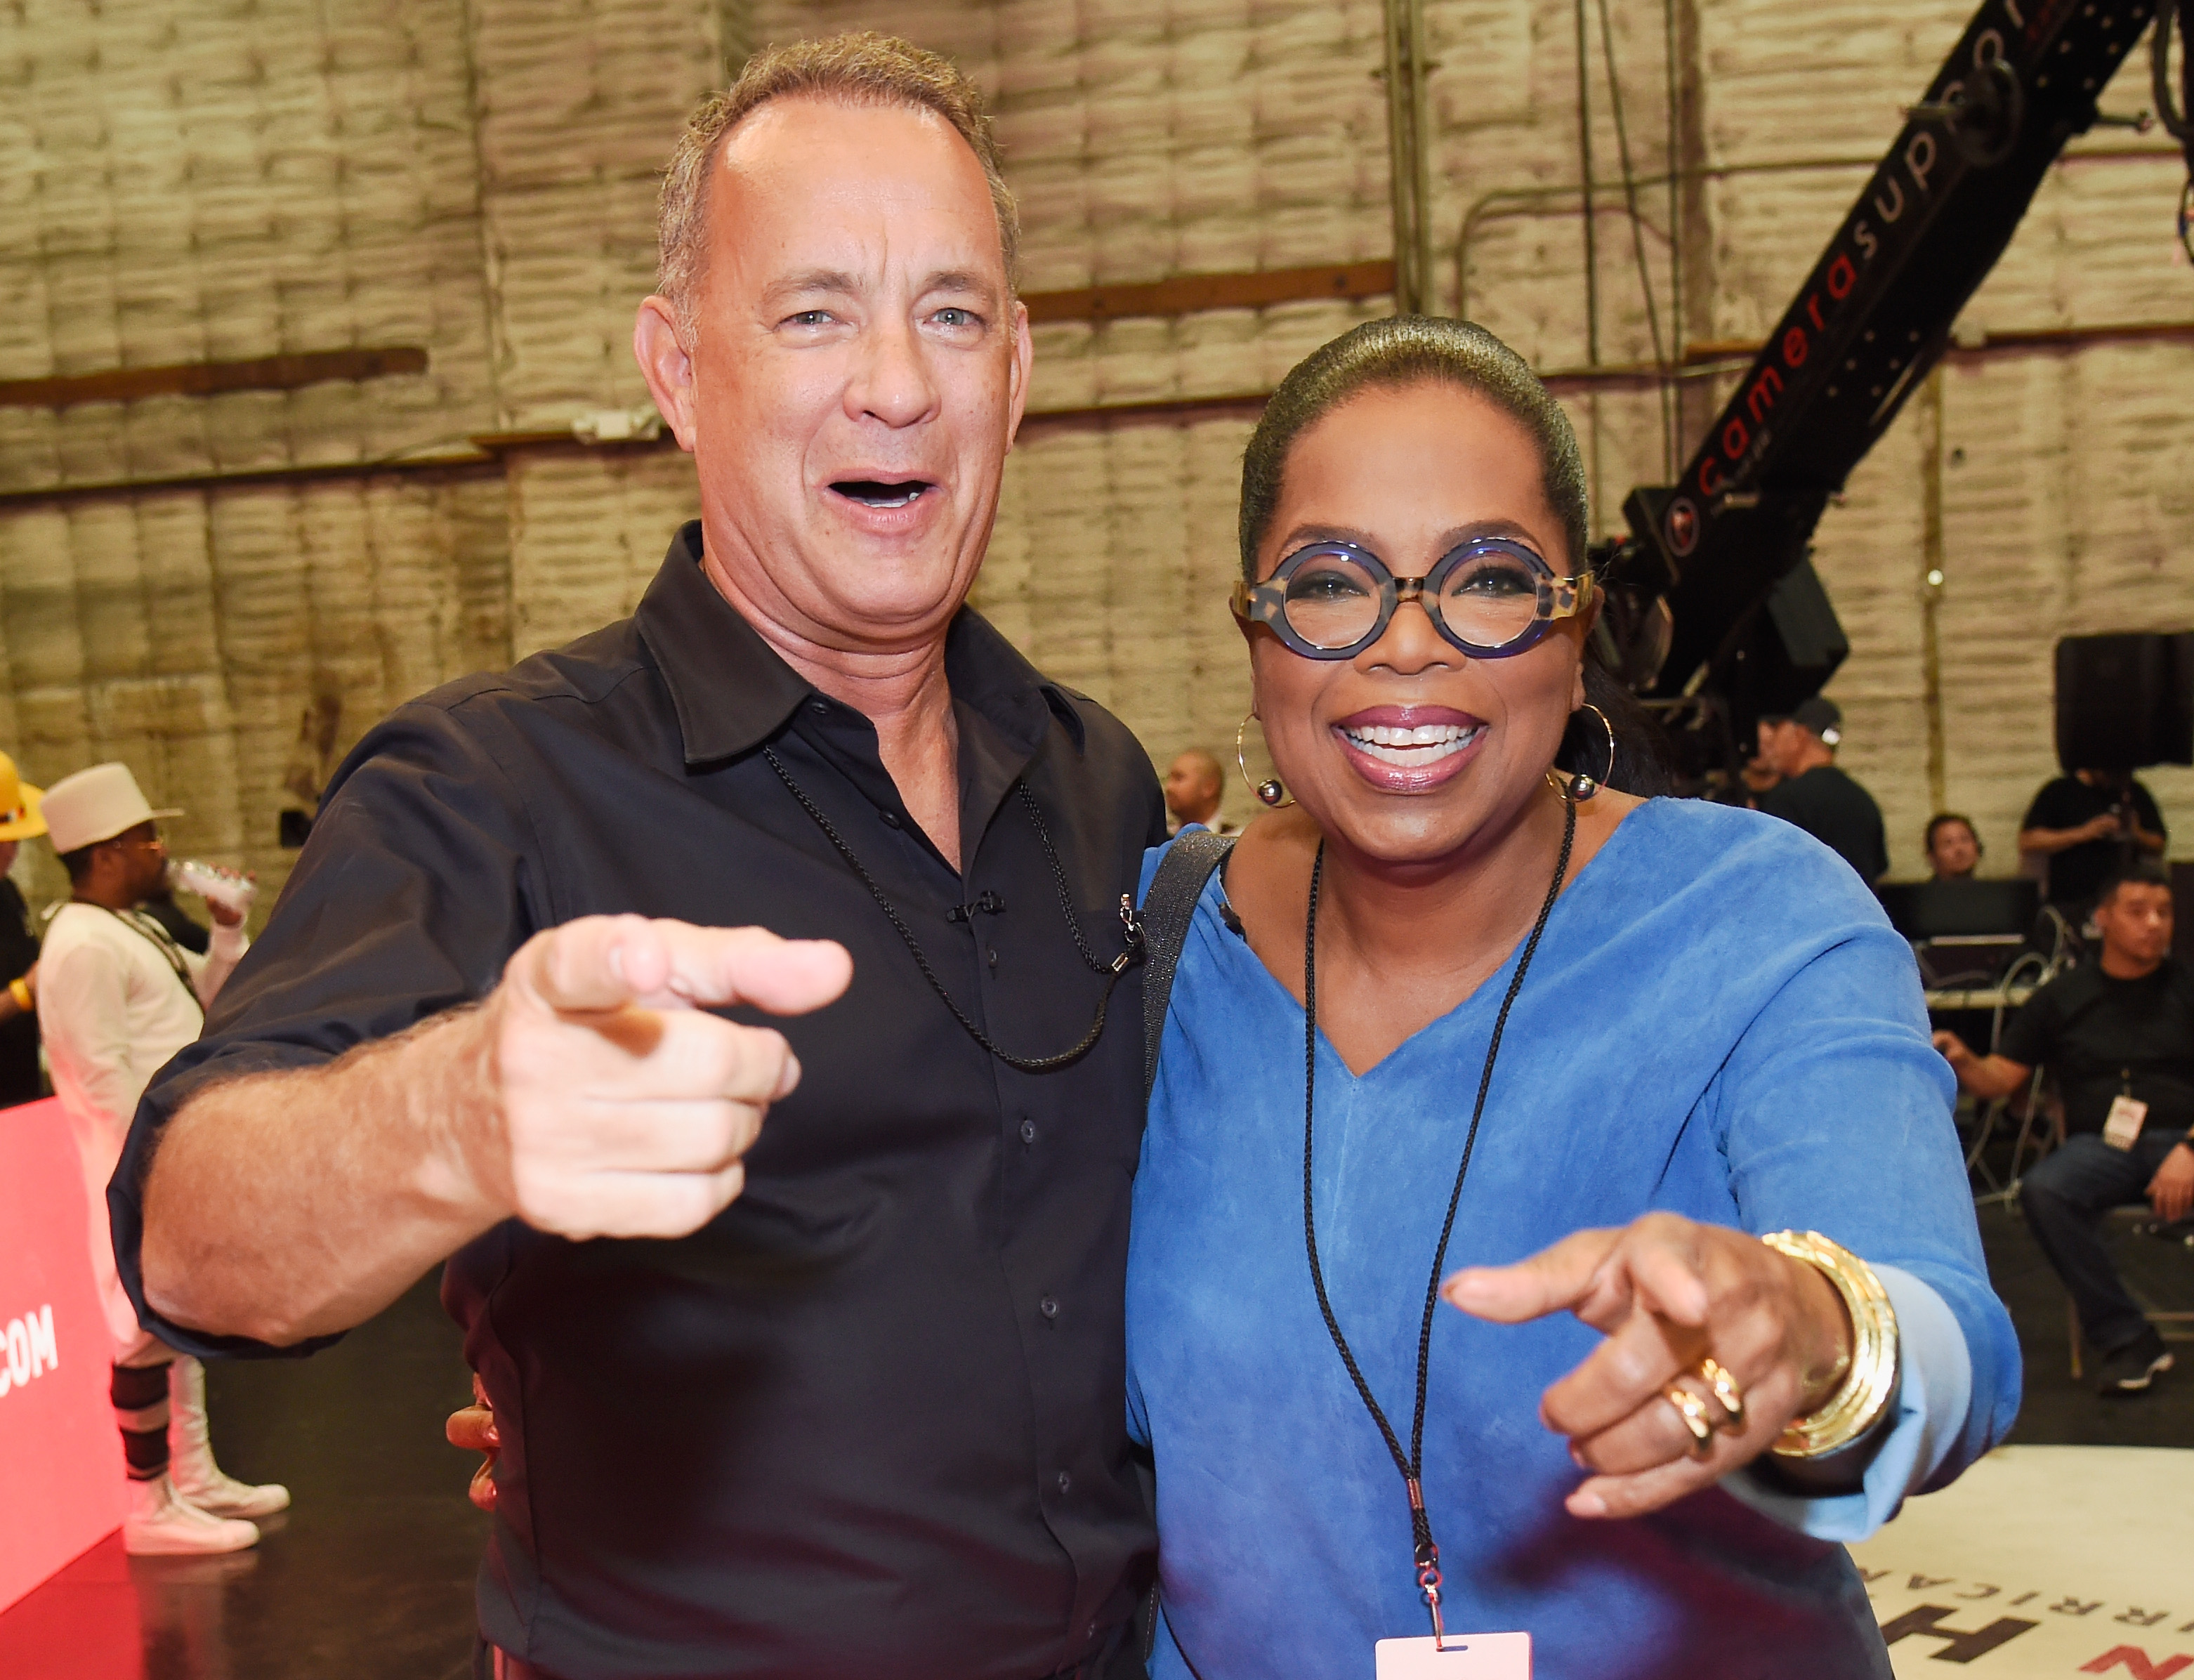 "<div class=""meta image-caption""><div class=""origin-logo origin-image none""><span>none</span></div><span class=""caption-text"">Tom Hanks and Oprah Winfrey attend Hand in Hand: A Benefit for Hurricane Relief at Universal Studios AMC on September 12, 2017 in Universal City, California. (Kevin Mazur/Hand in Hand/Getty Images)</span></div>"